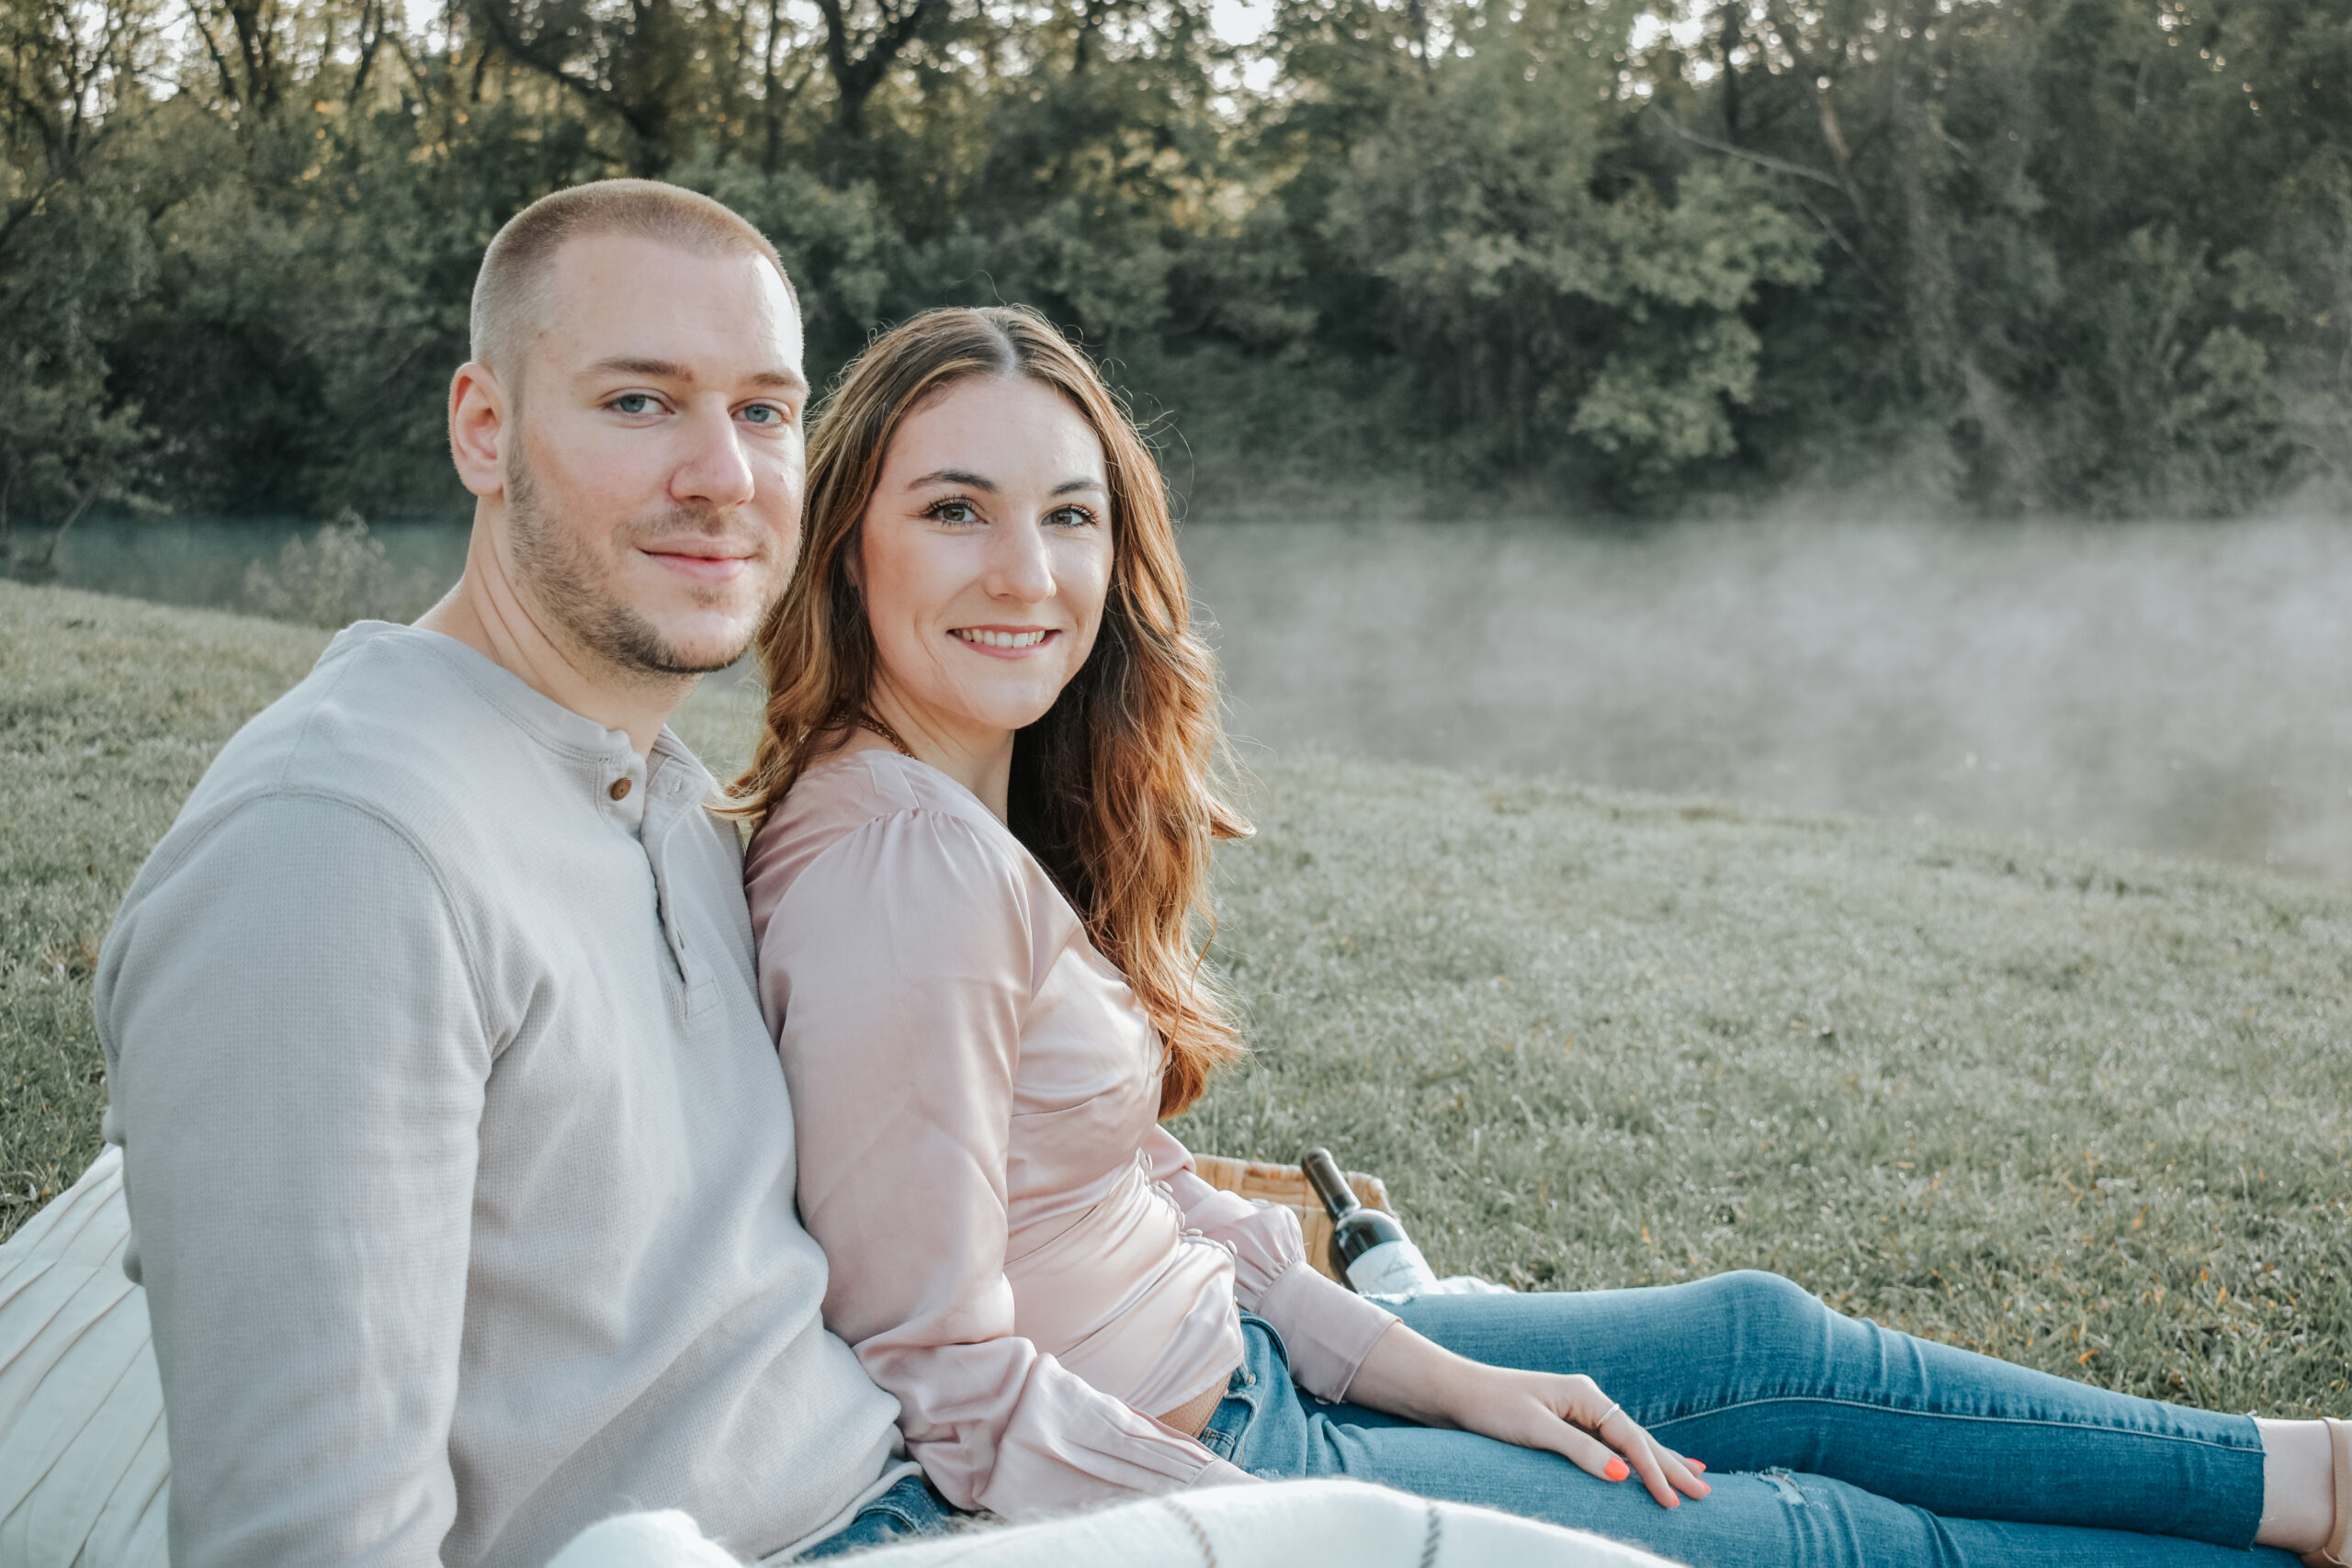 How to dress for a portrait session – couples